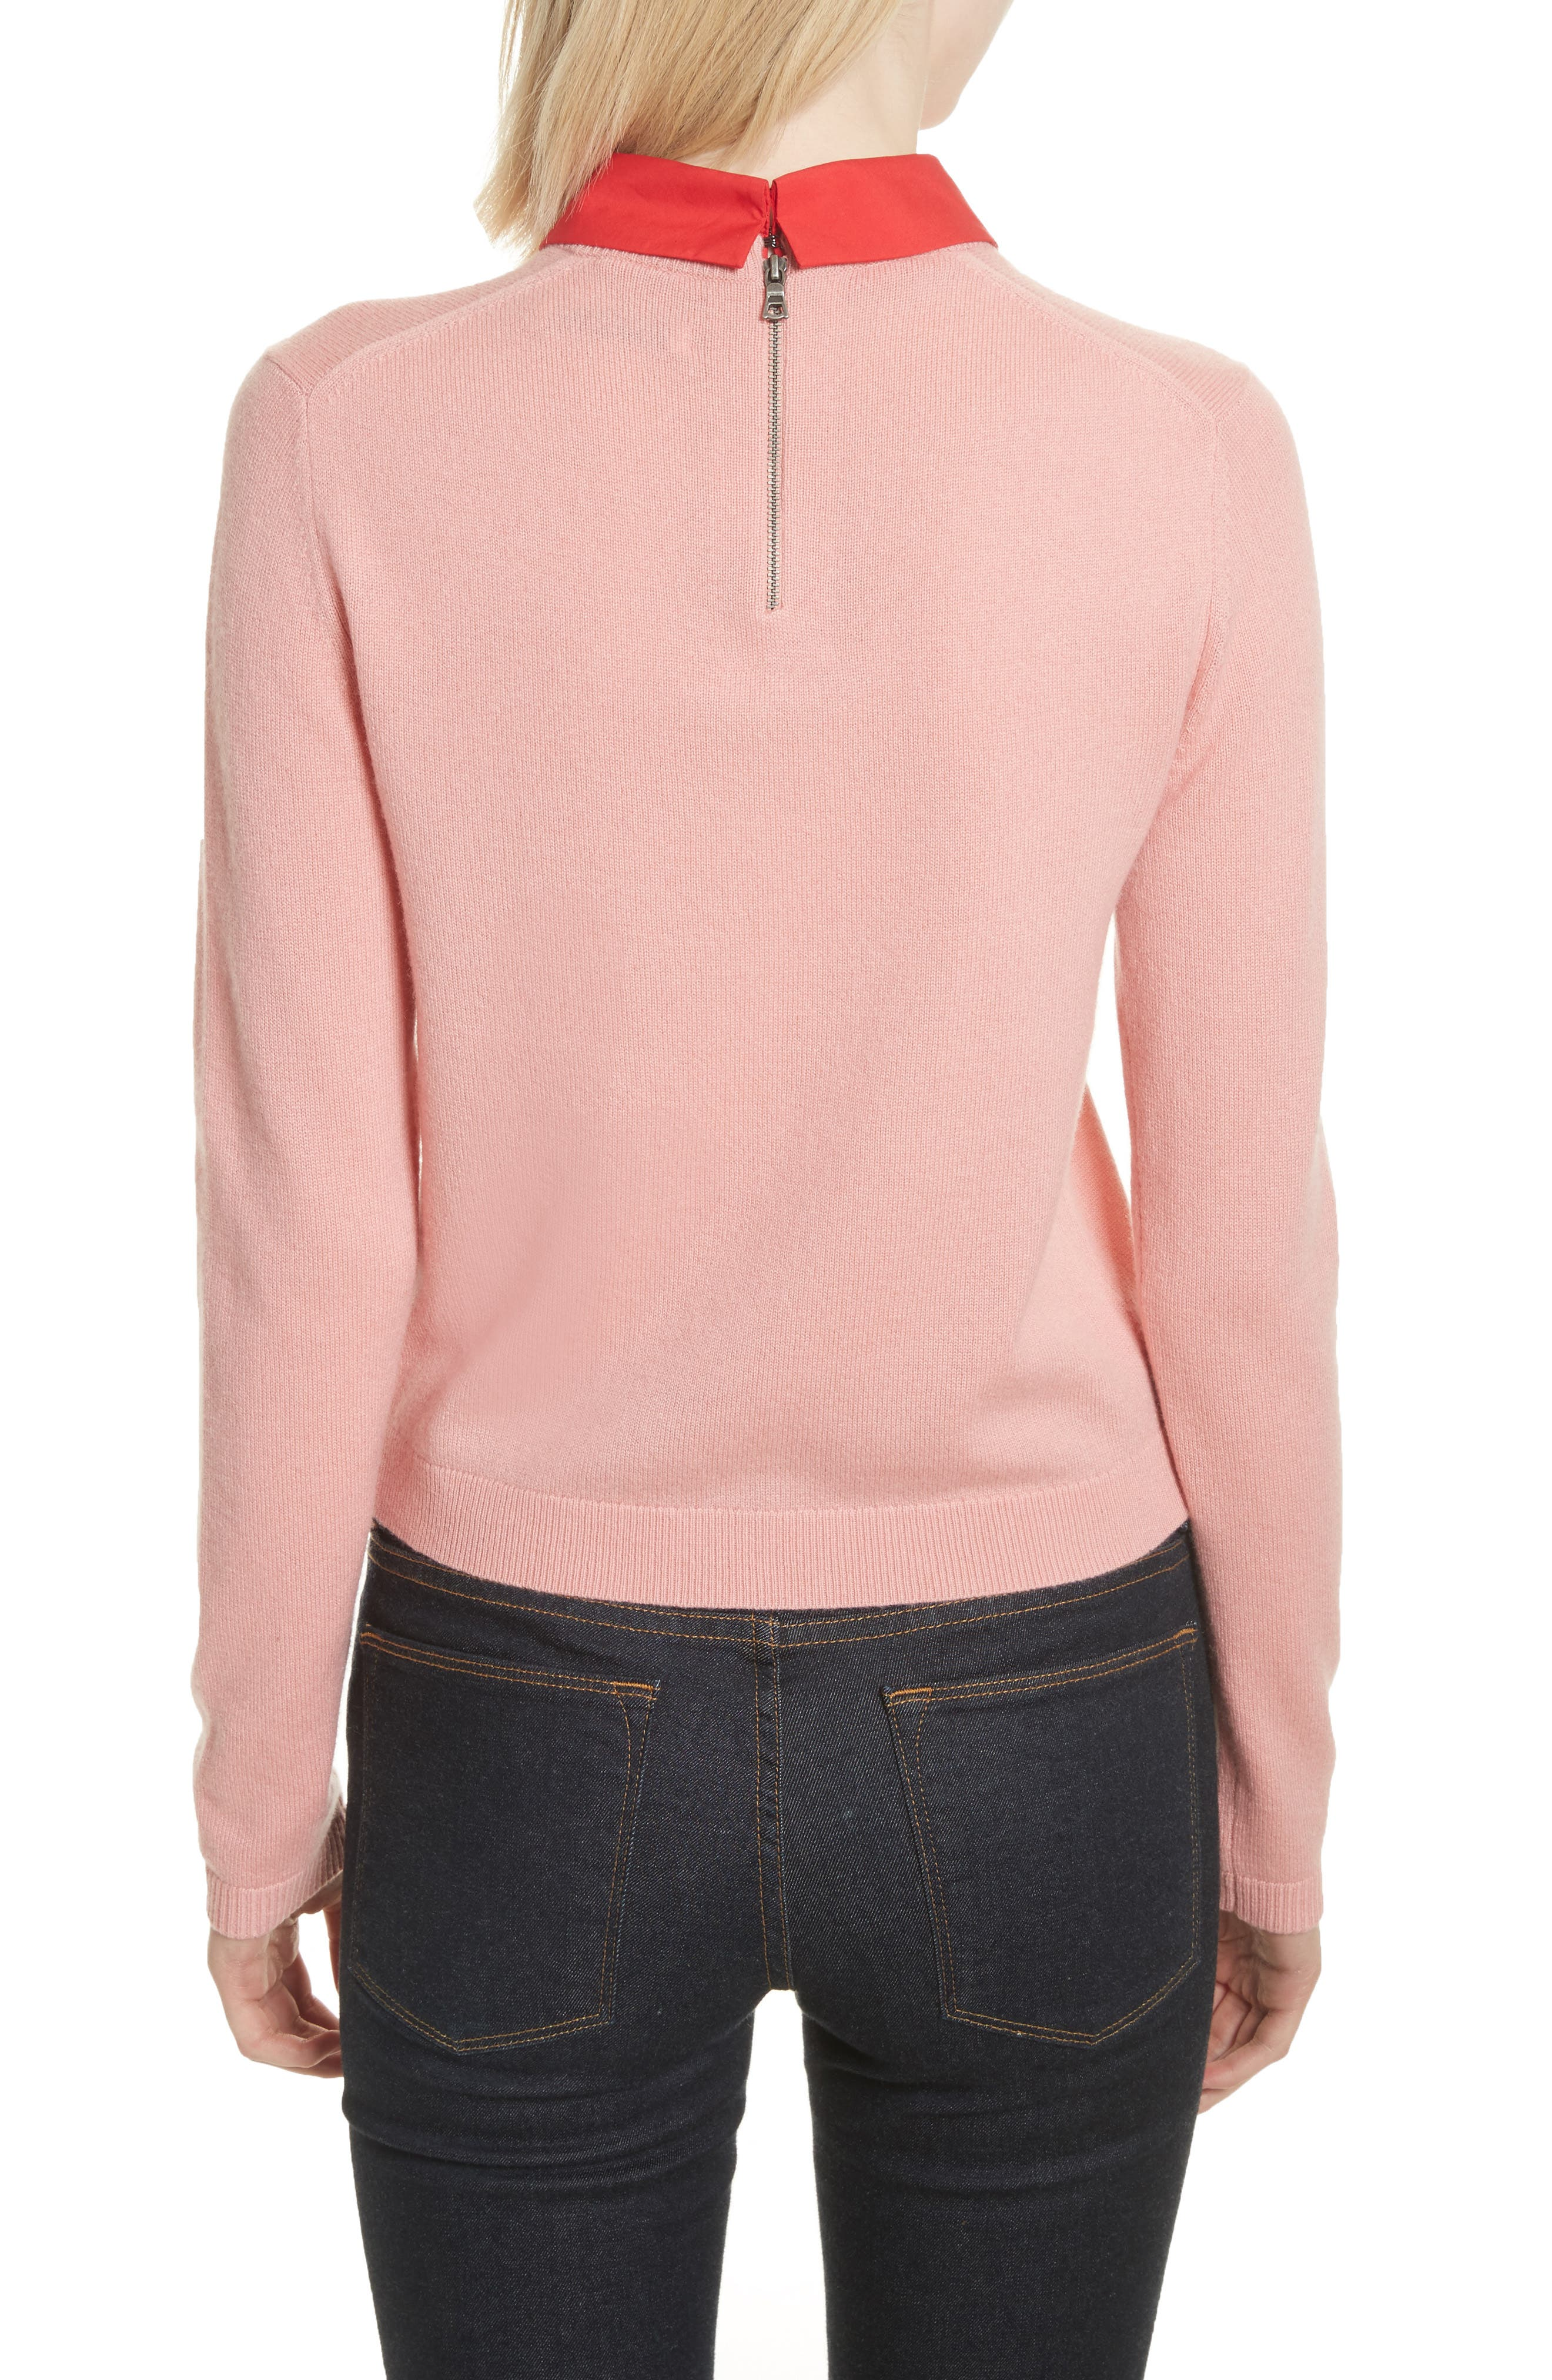 Big Love Embroidered Cashmere Sweater,                             Alternate thumbnail 2, color,                             Millennial Pink/ Apple